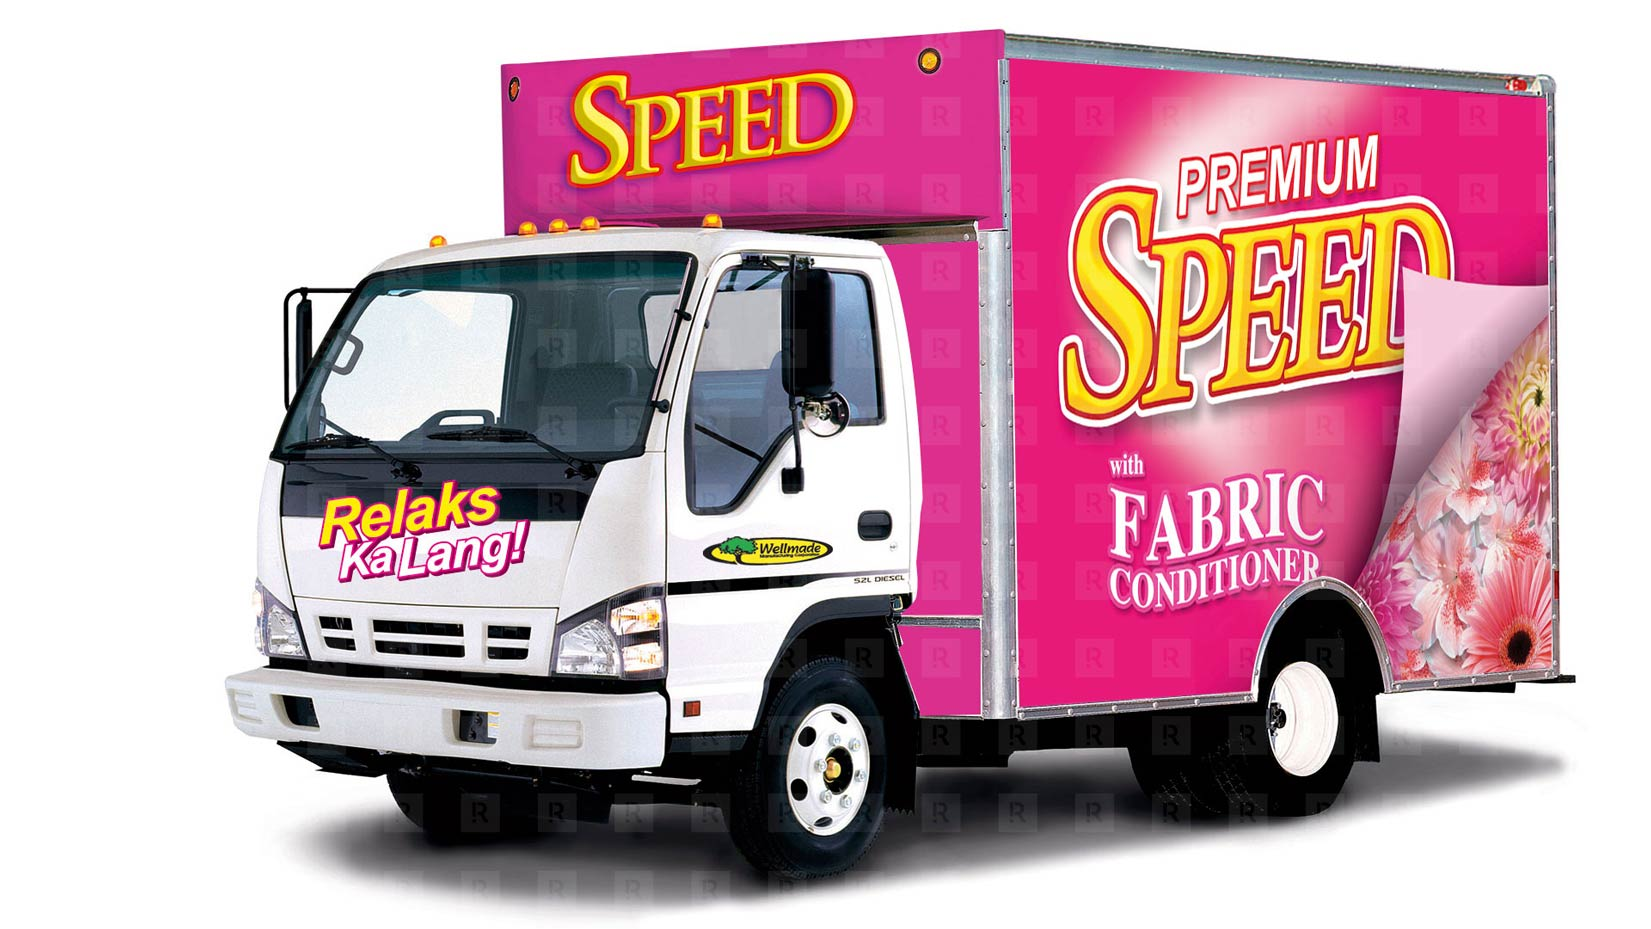 Speed FabCon Truck Design